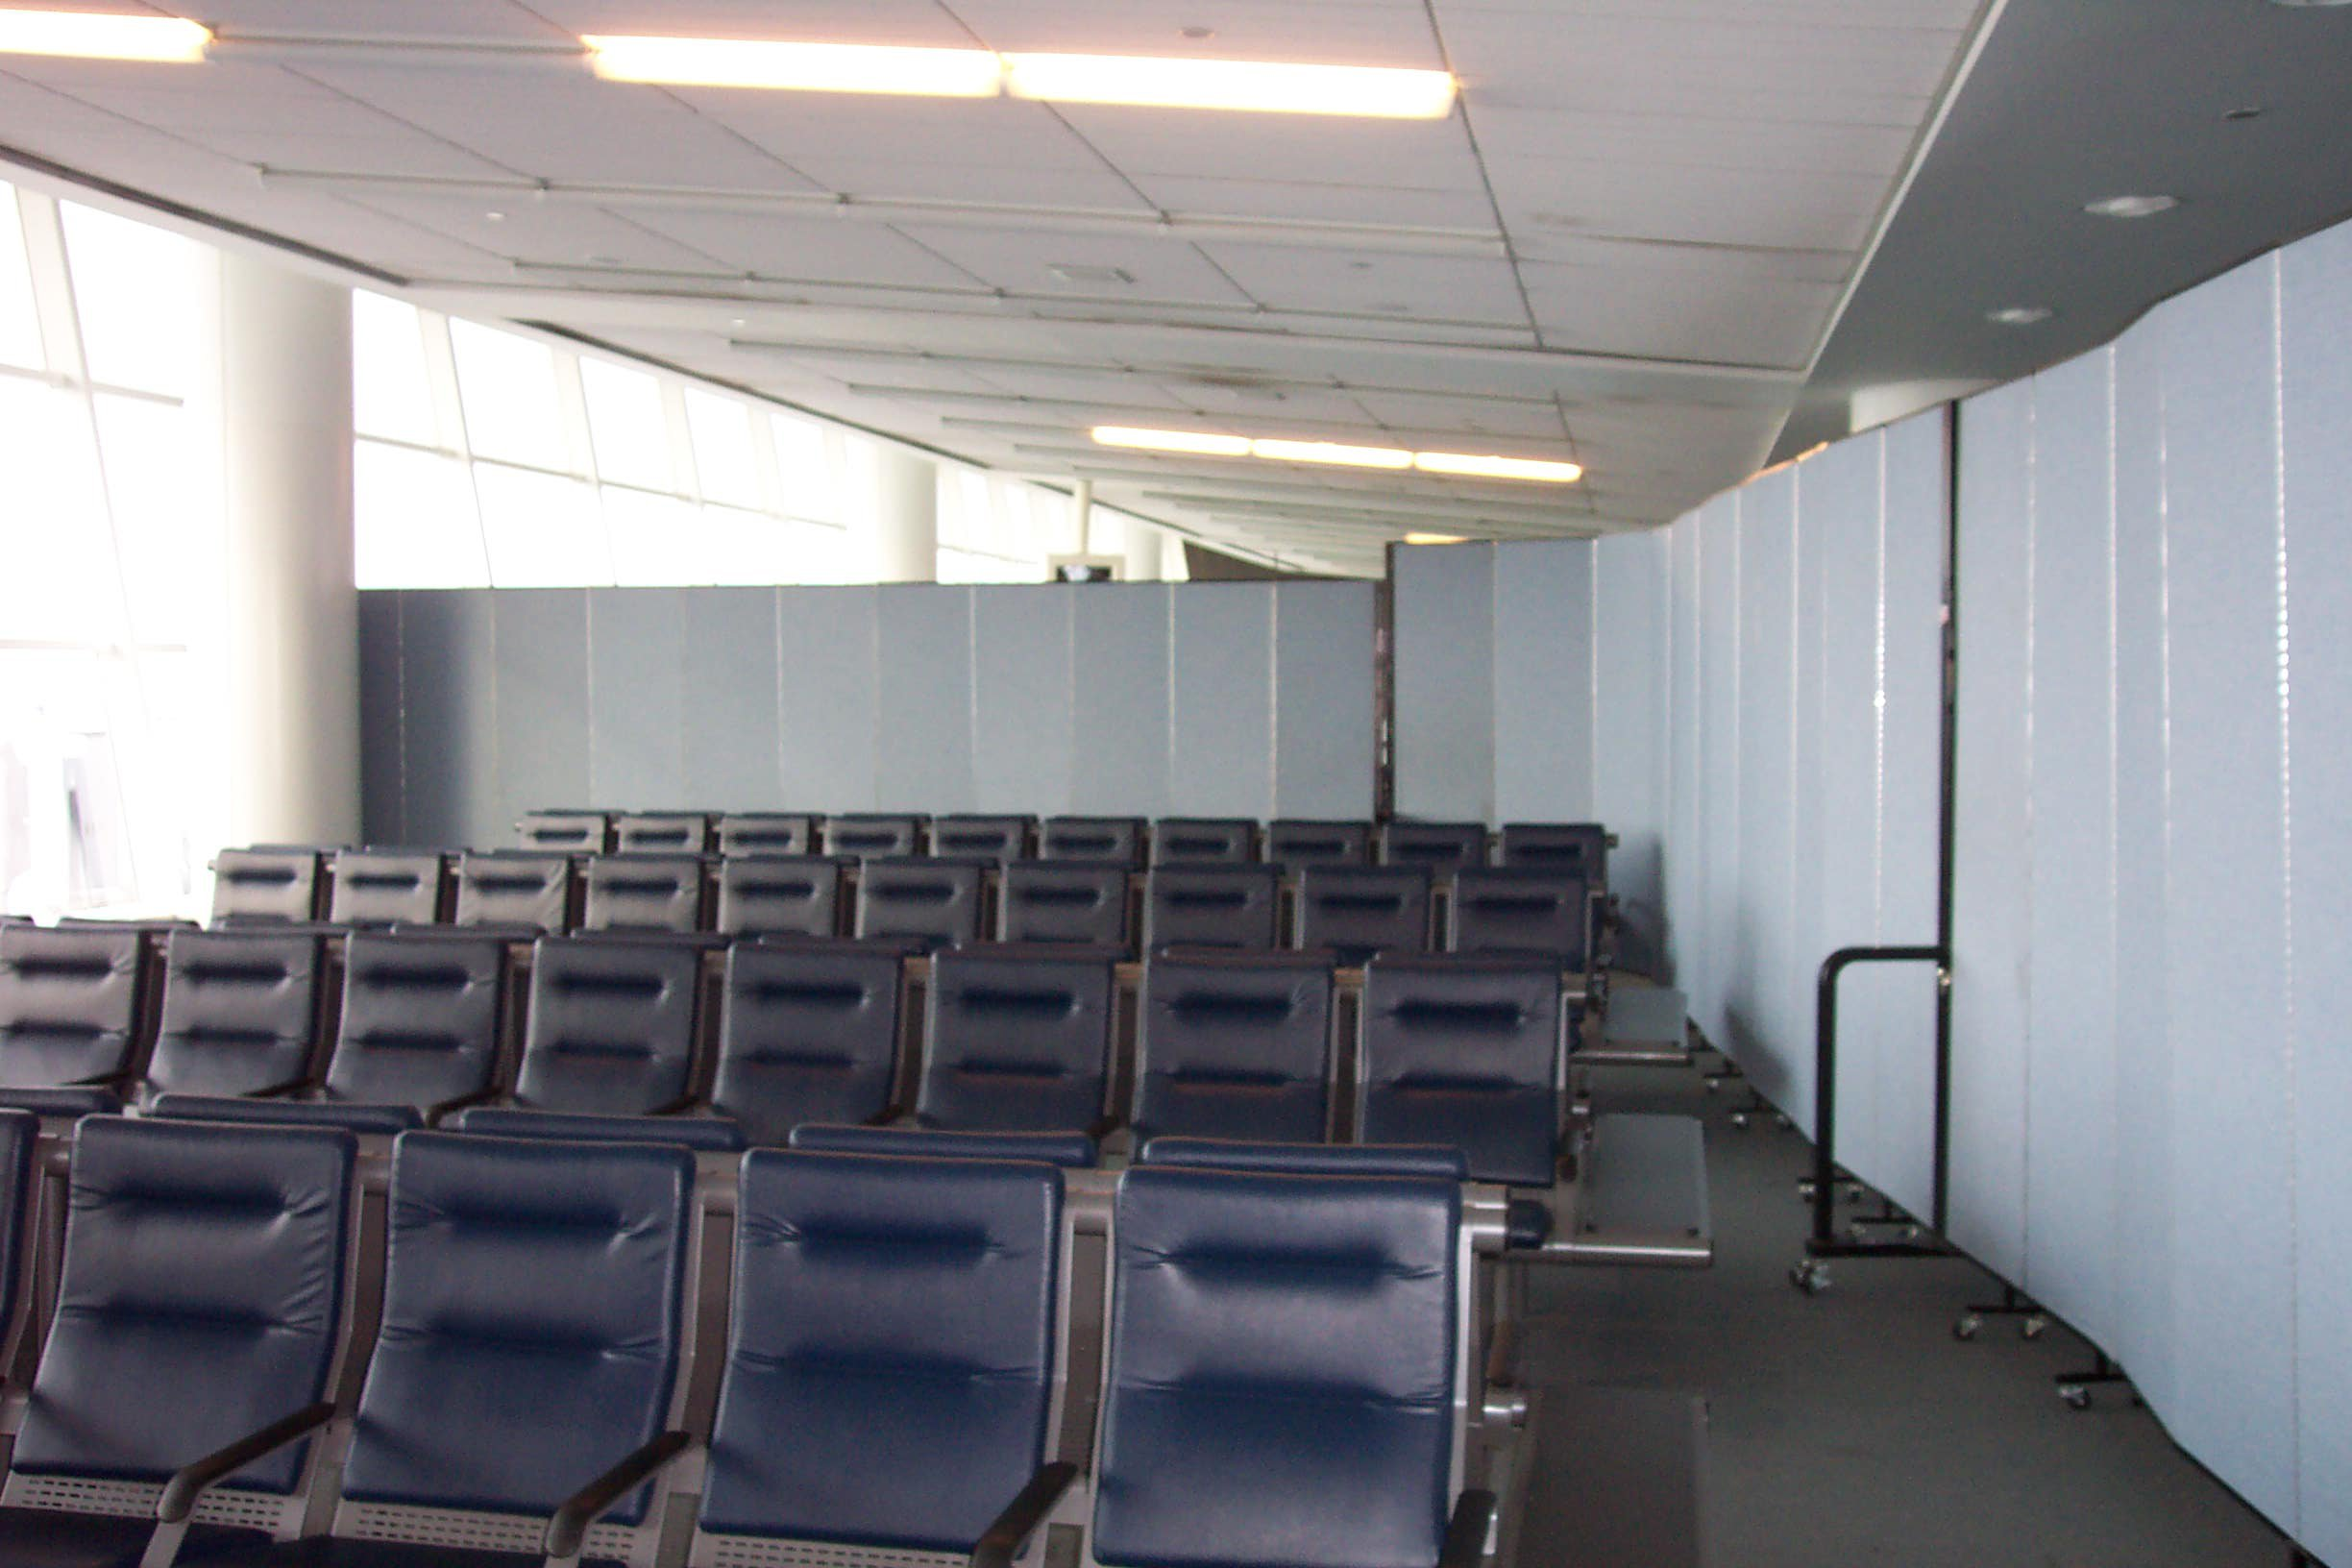 Page not found screenflex portable room iders - Enclosing An Airport Gate Area With Portable Walls